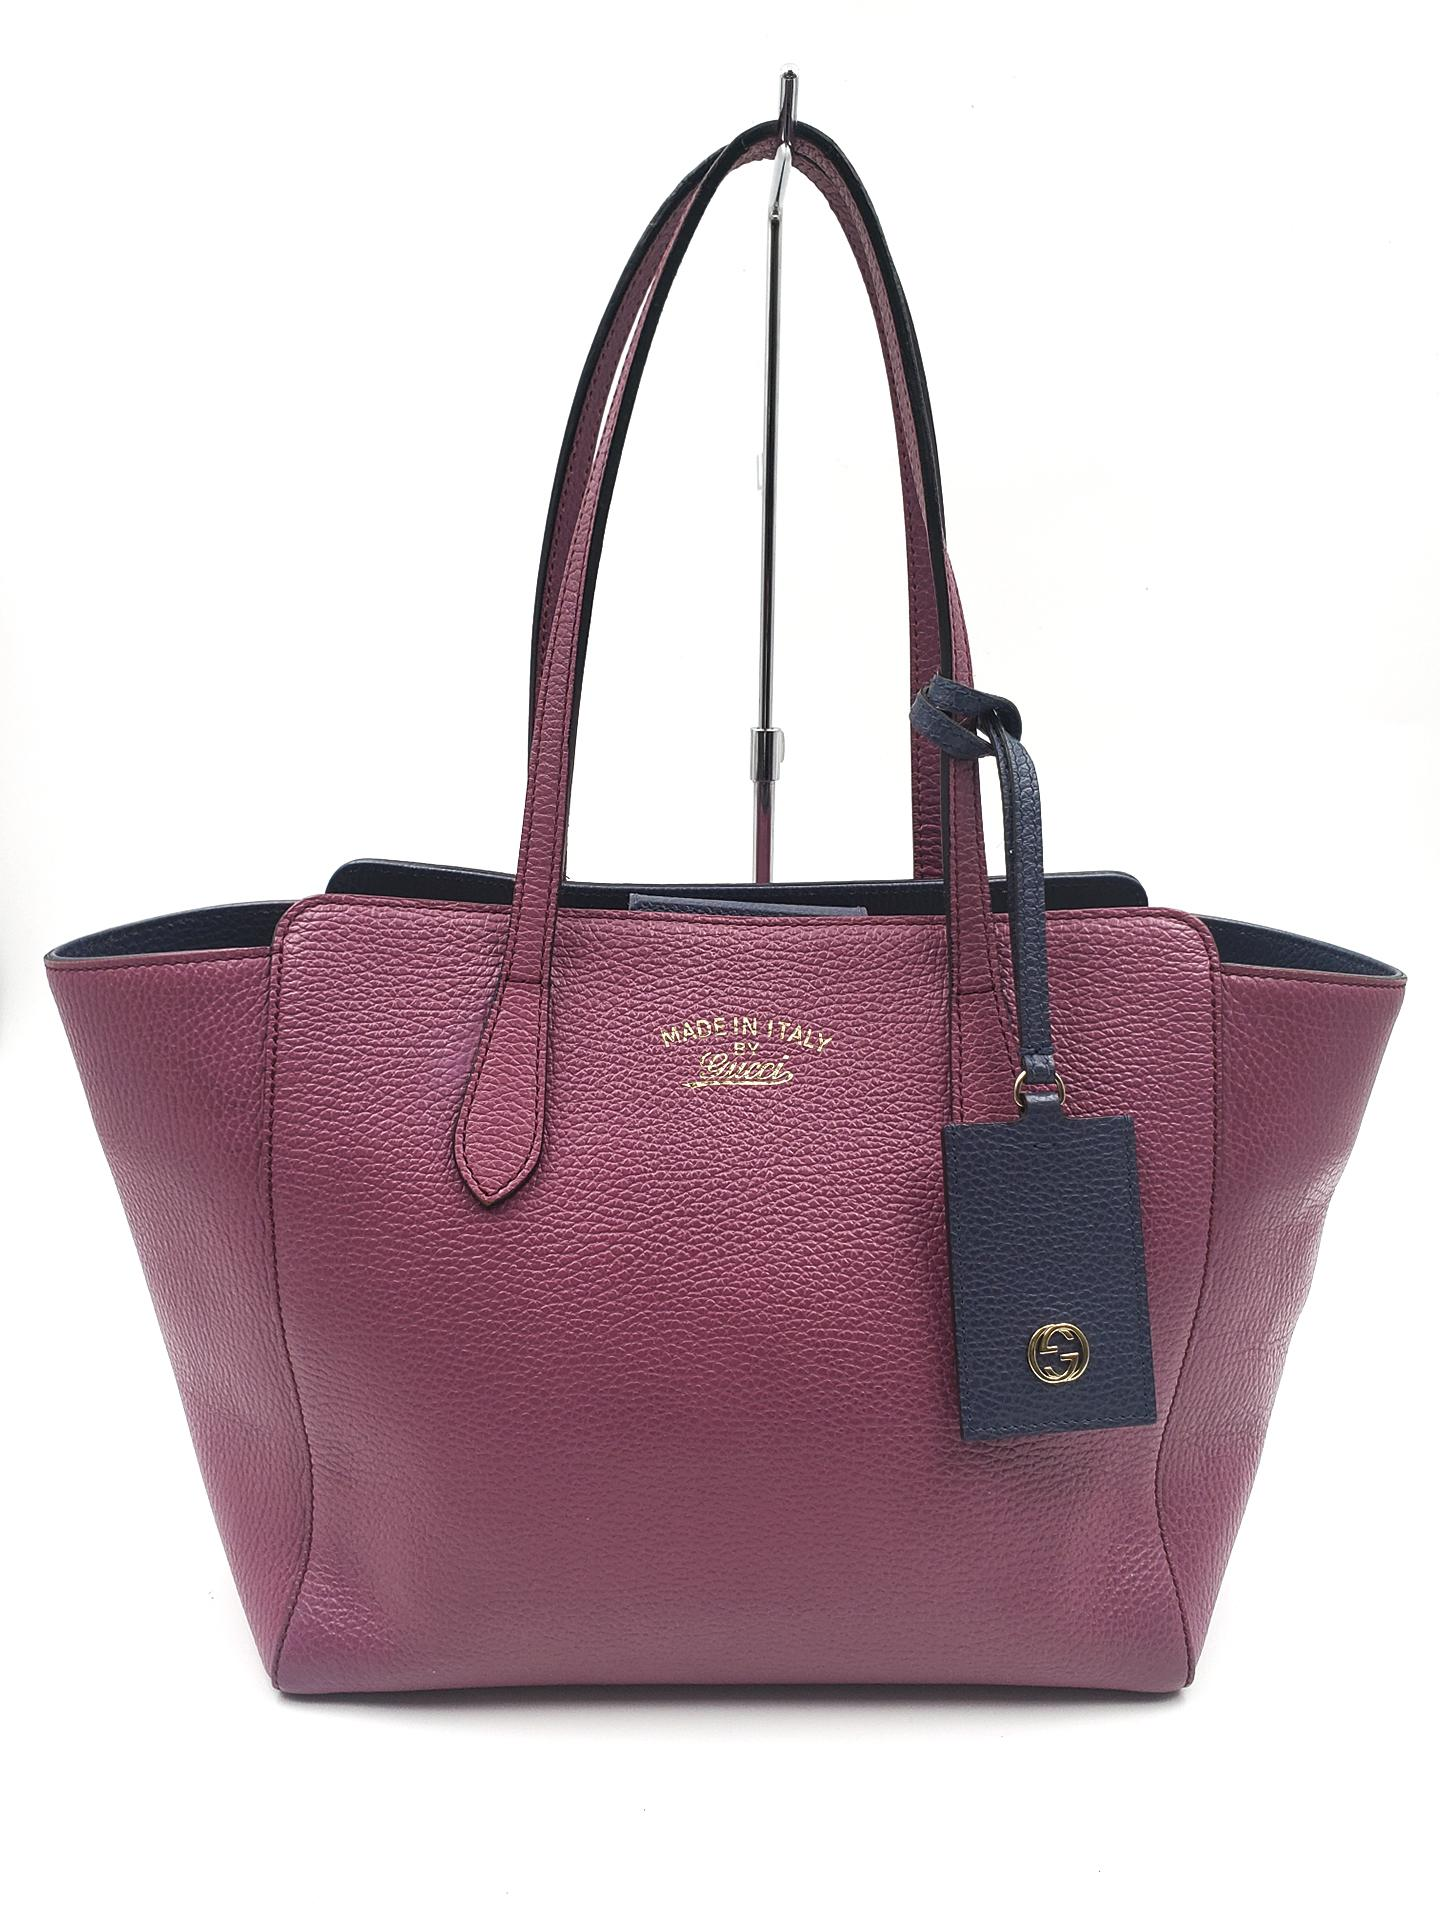 Tote bag, Swing, Textured leather